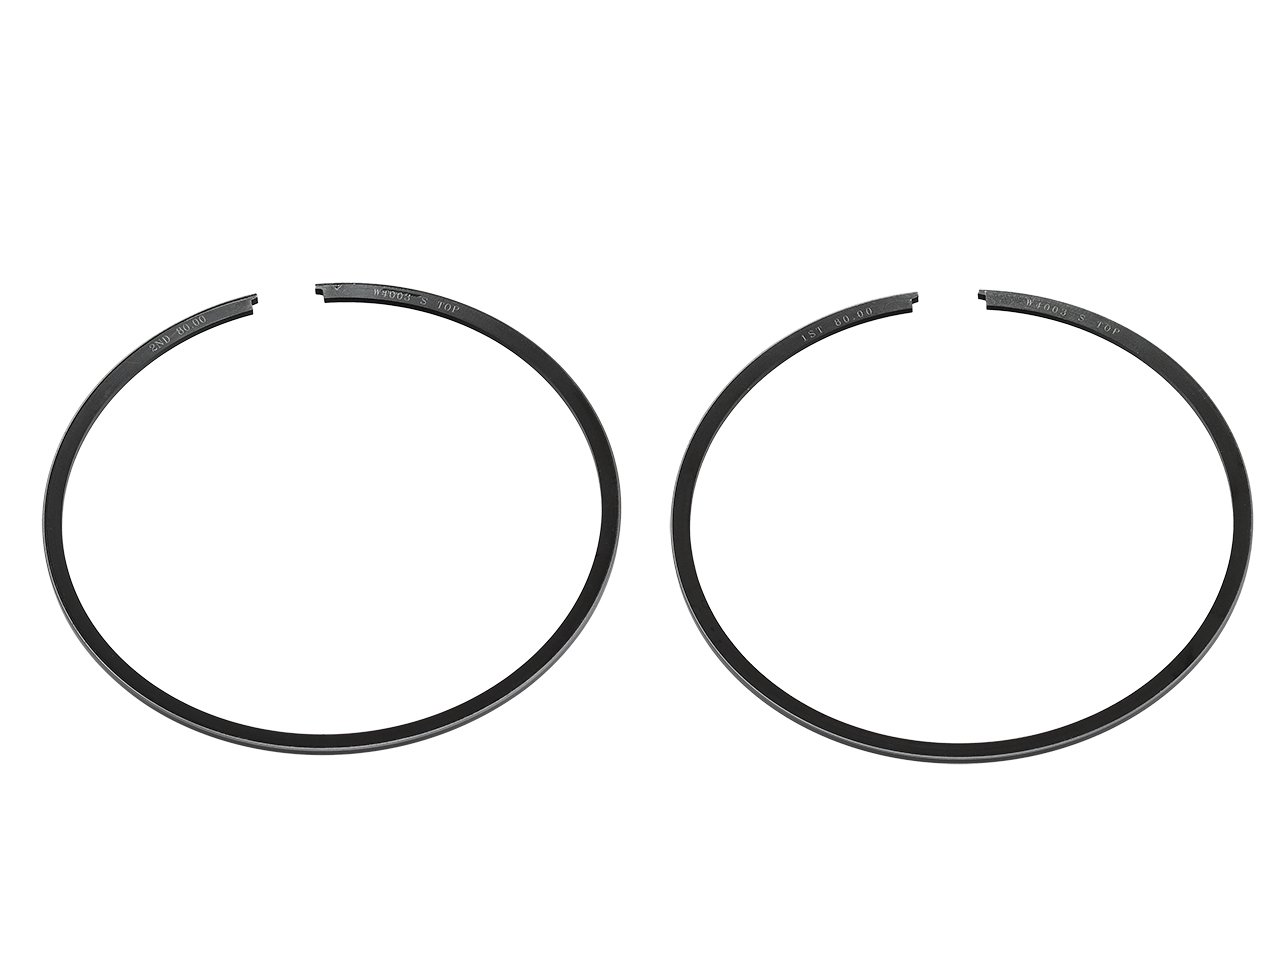 NAMURA PISTON RING NW-40003R